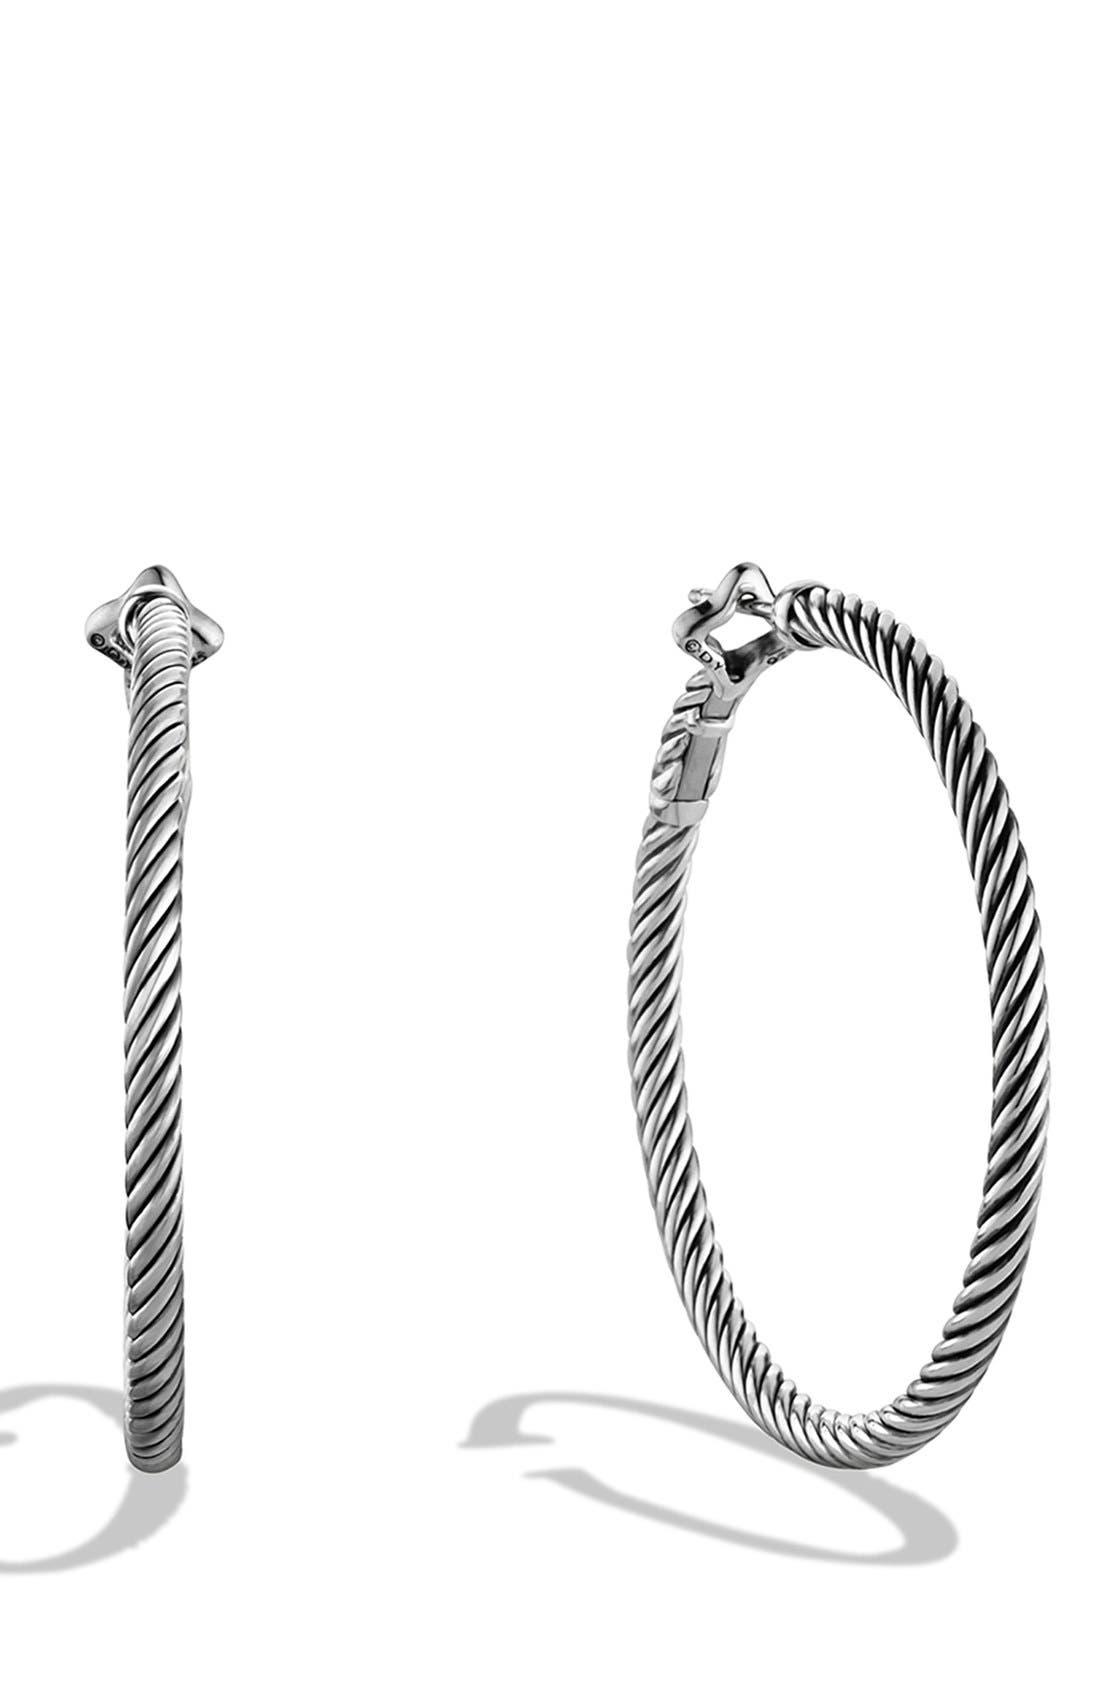 David Yurman 'Cable Classics' Large Hoop Earrings